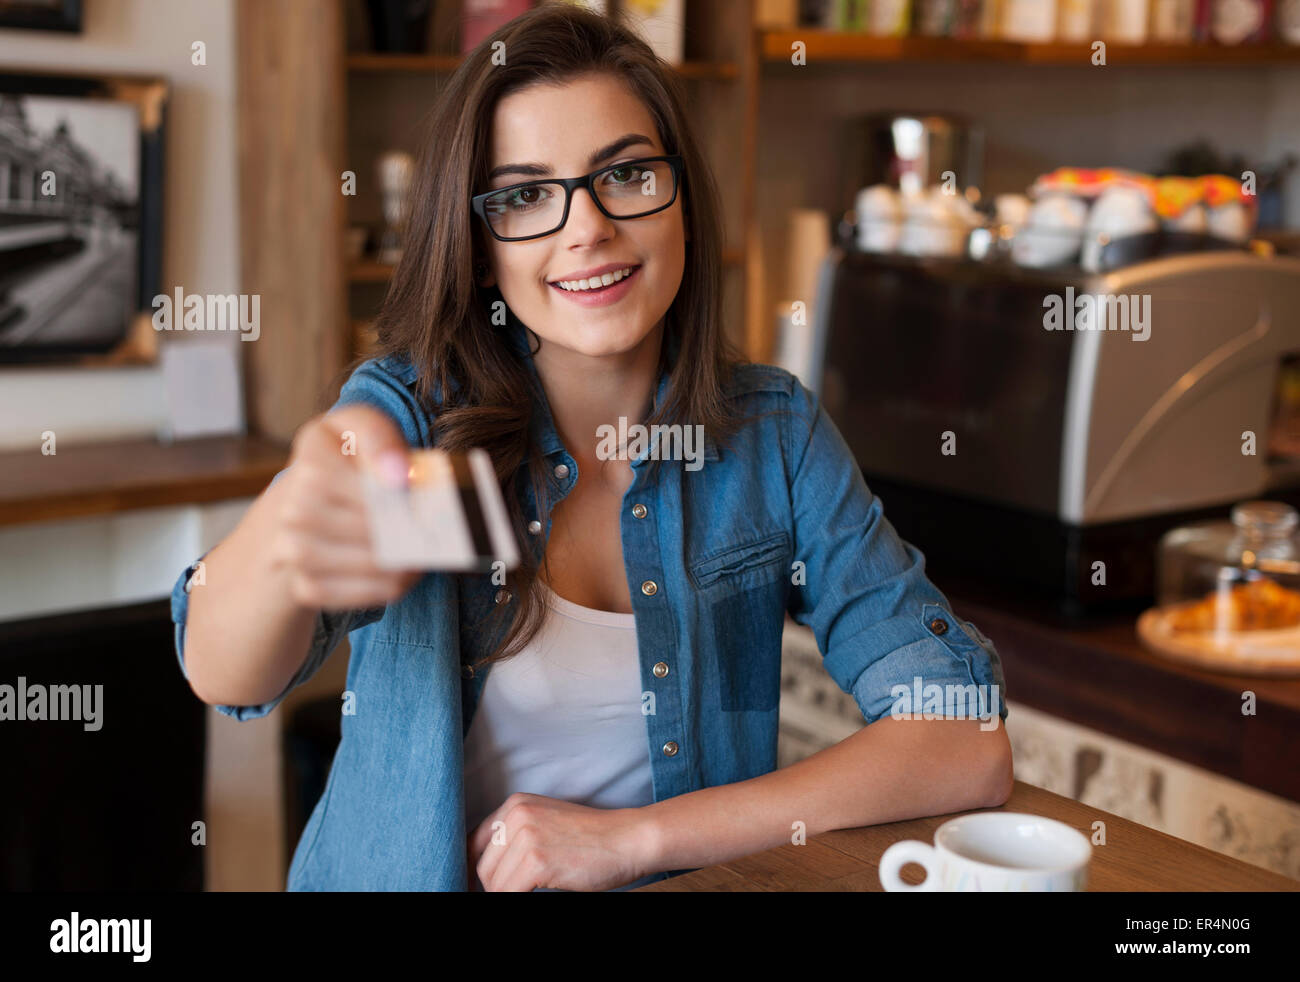 Smiling woman paying for coffee by credit card. Krakow, Poland - Stock Image